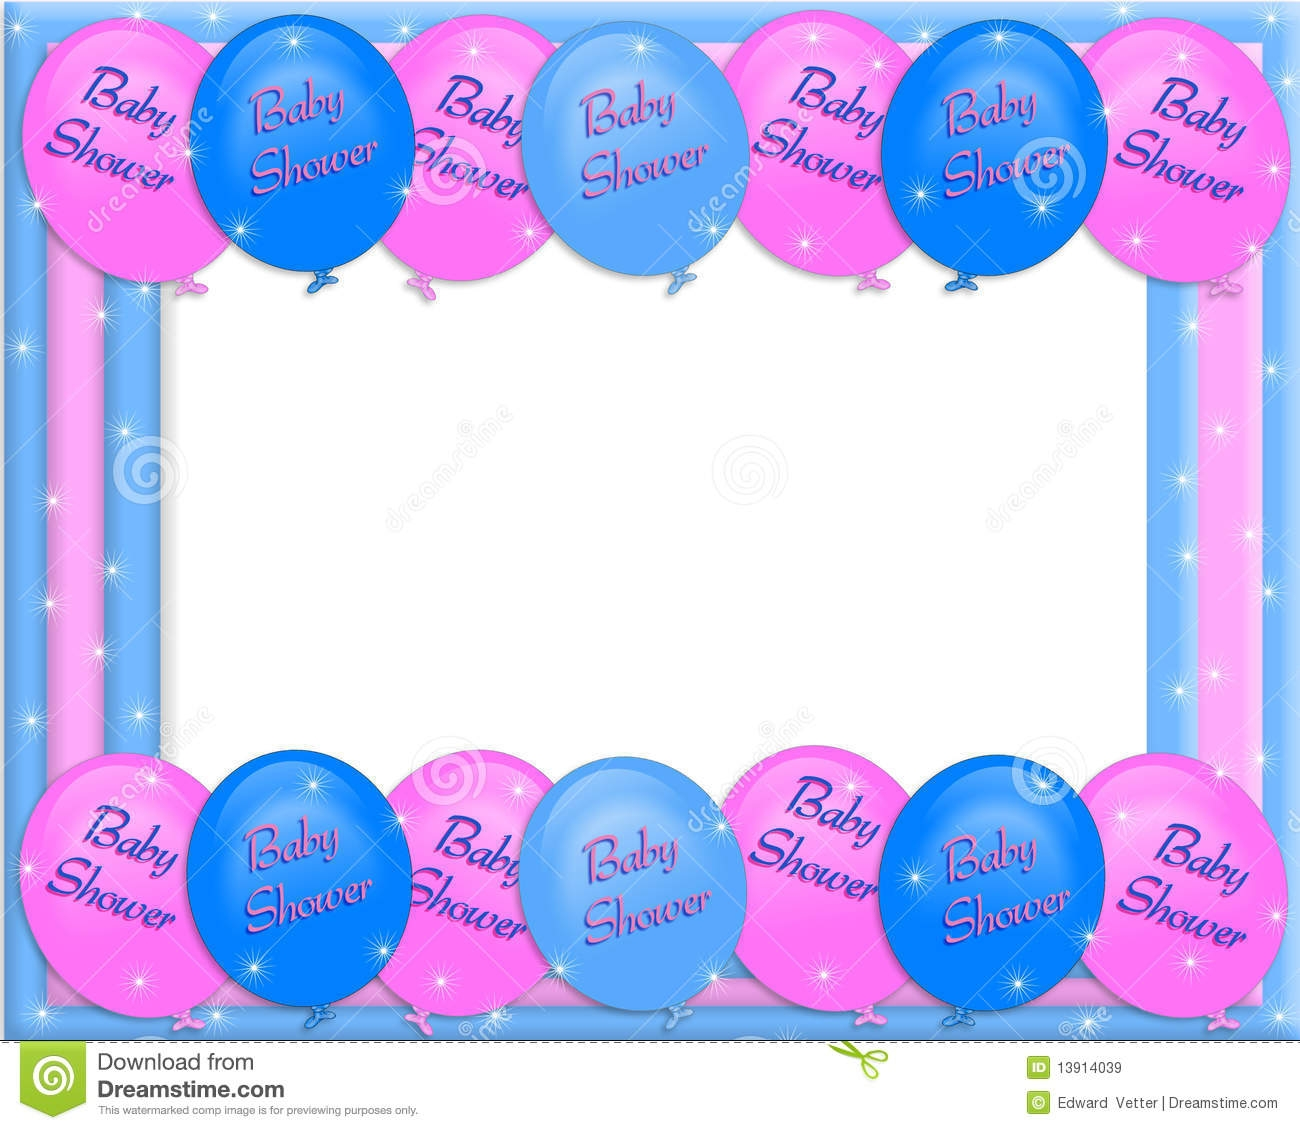 Footprint clipart baby shower Clipart Baby Clipart Shower Border